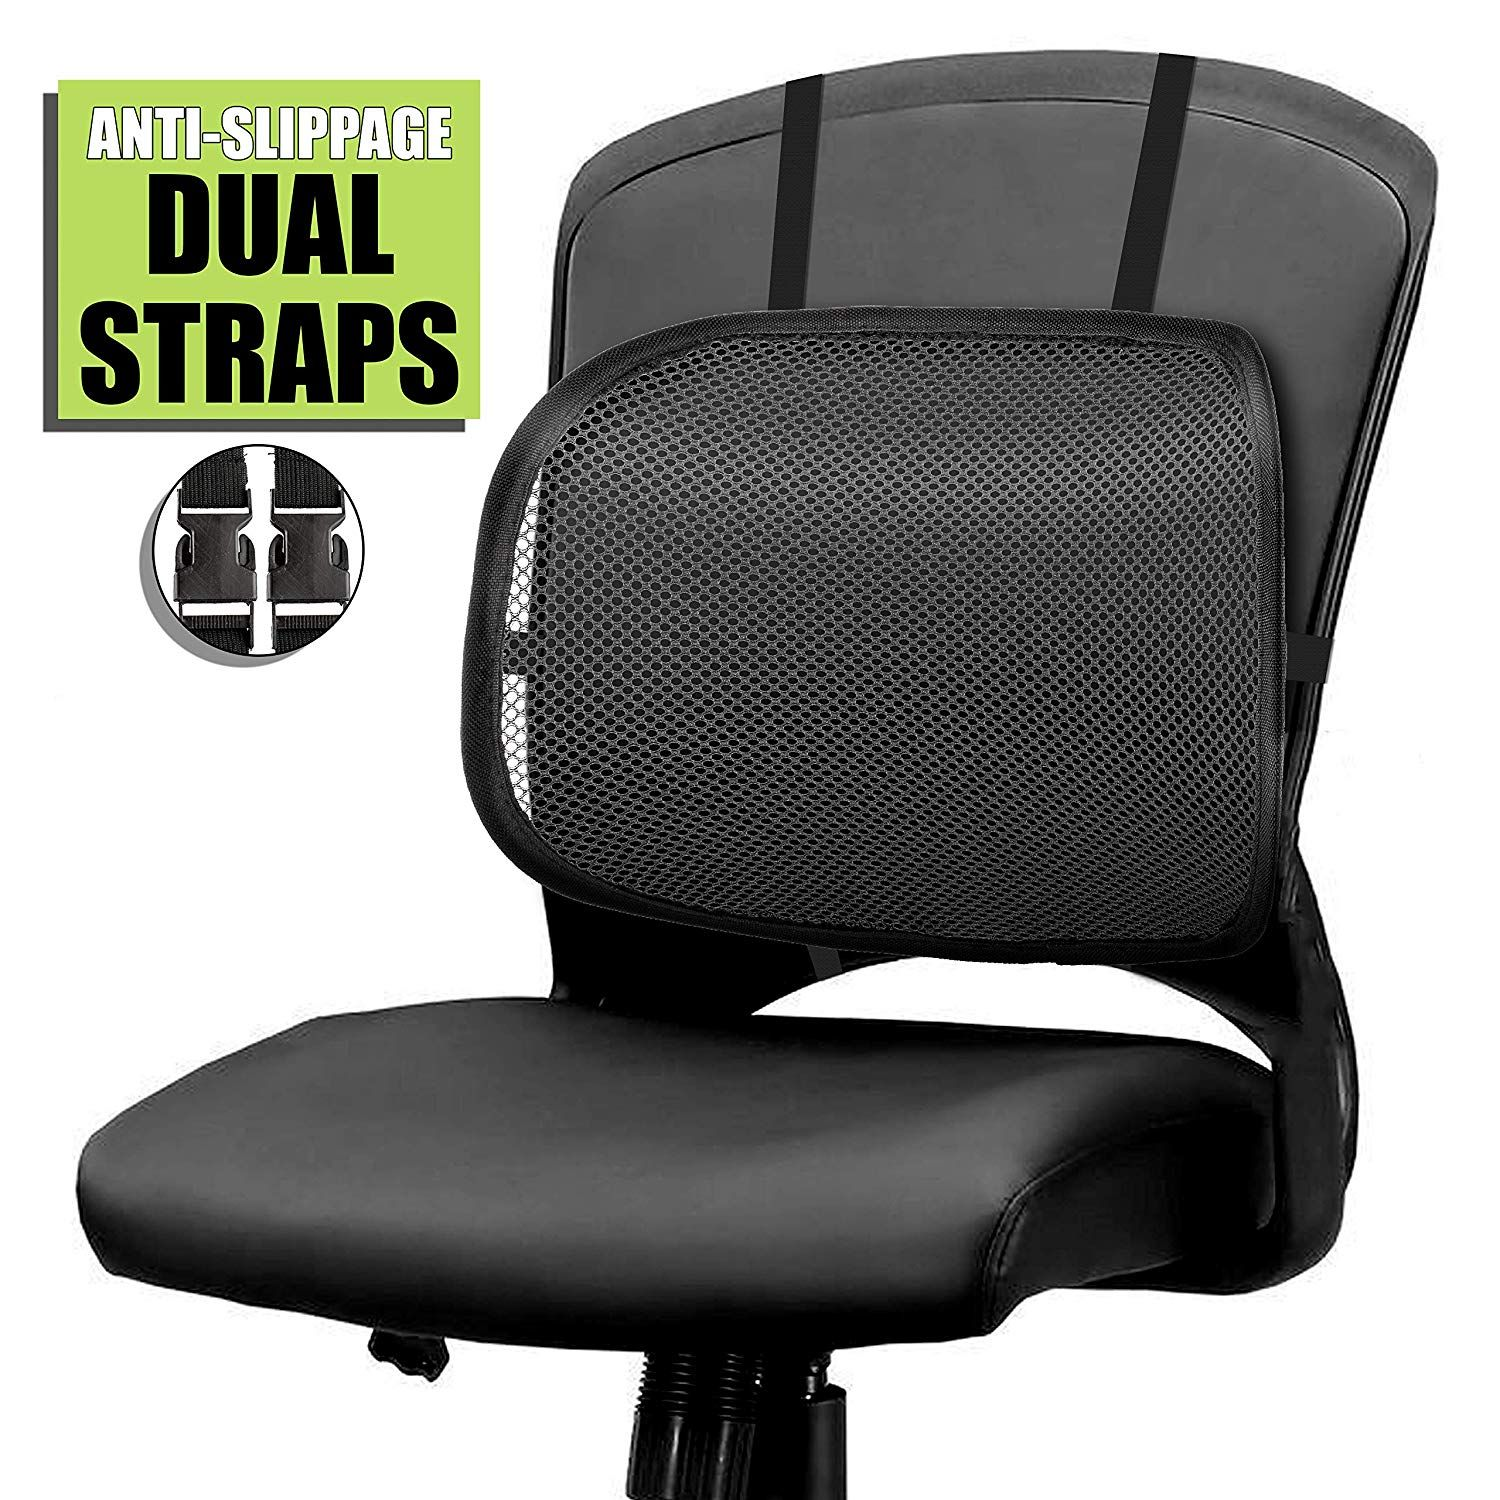 Back Support Office Chair With Images Ergonomic Chair Chair